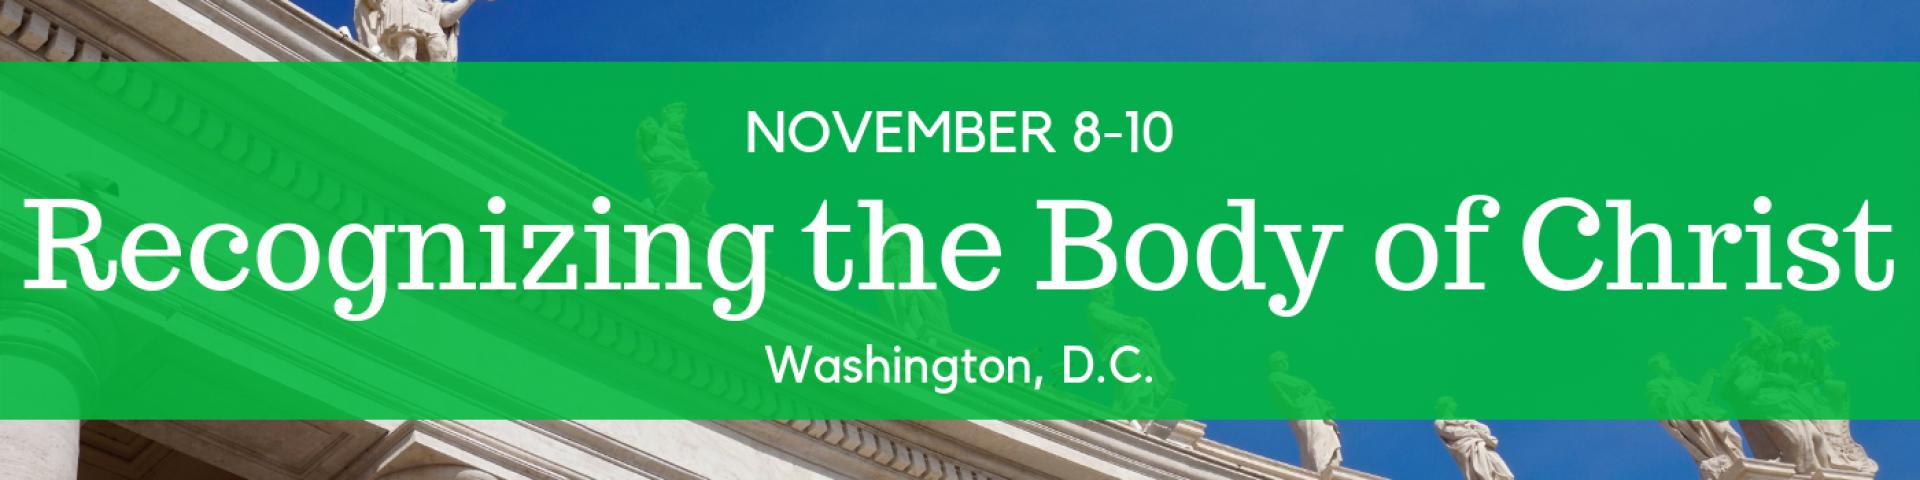 Text: Recognizing the Body of Christ, Washington D.C., November 8-10